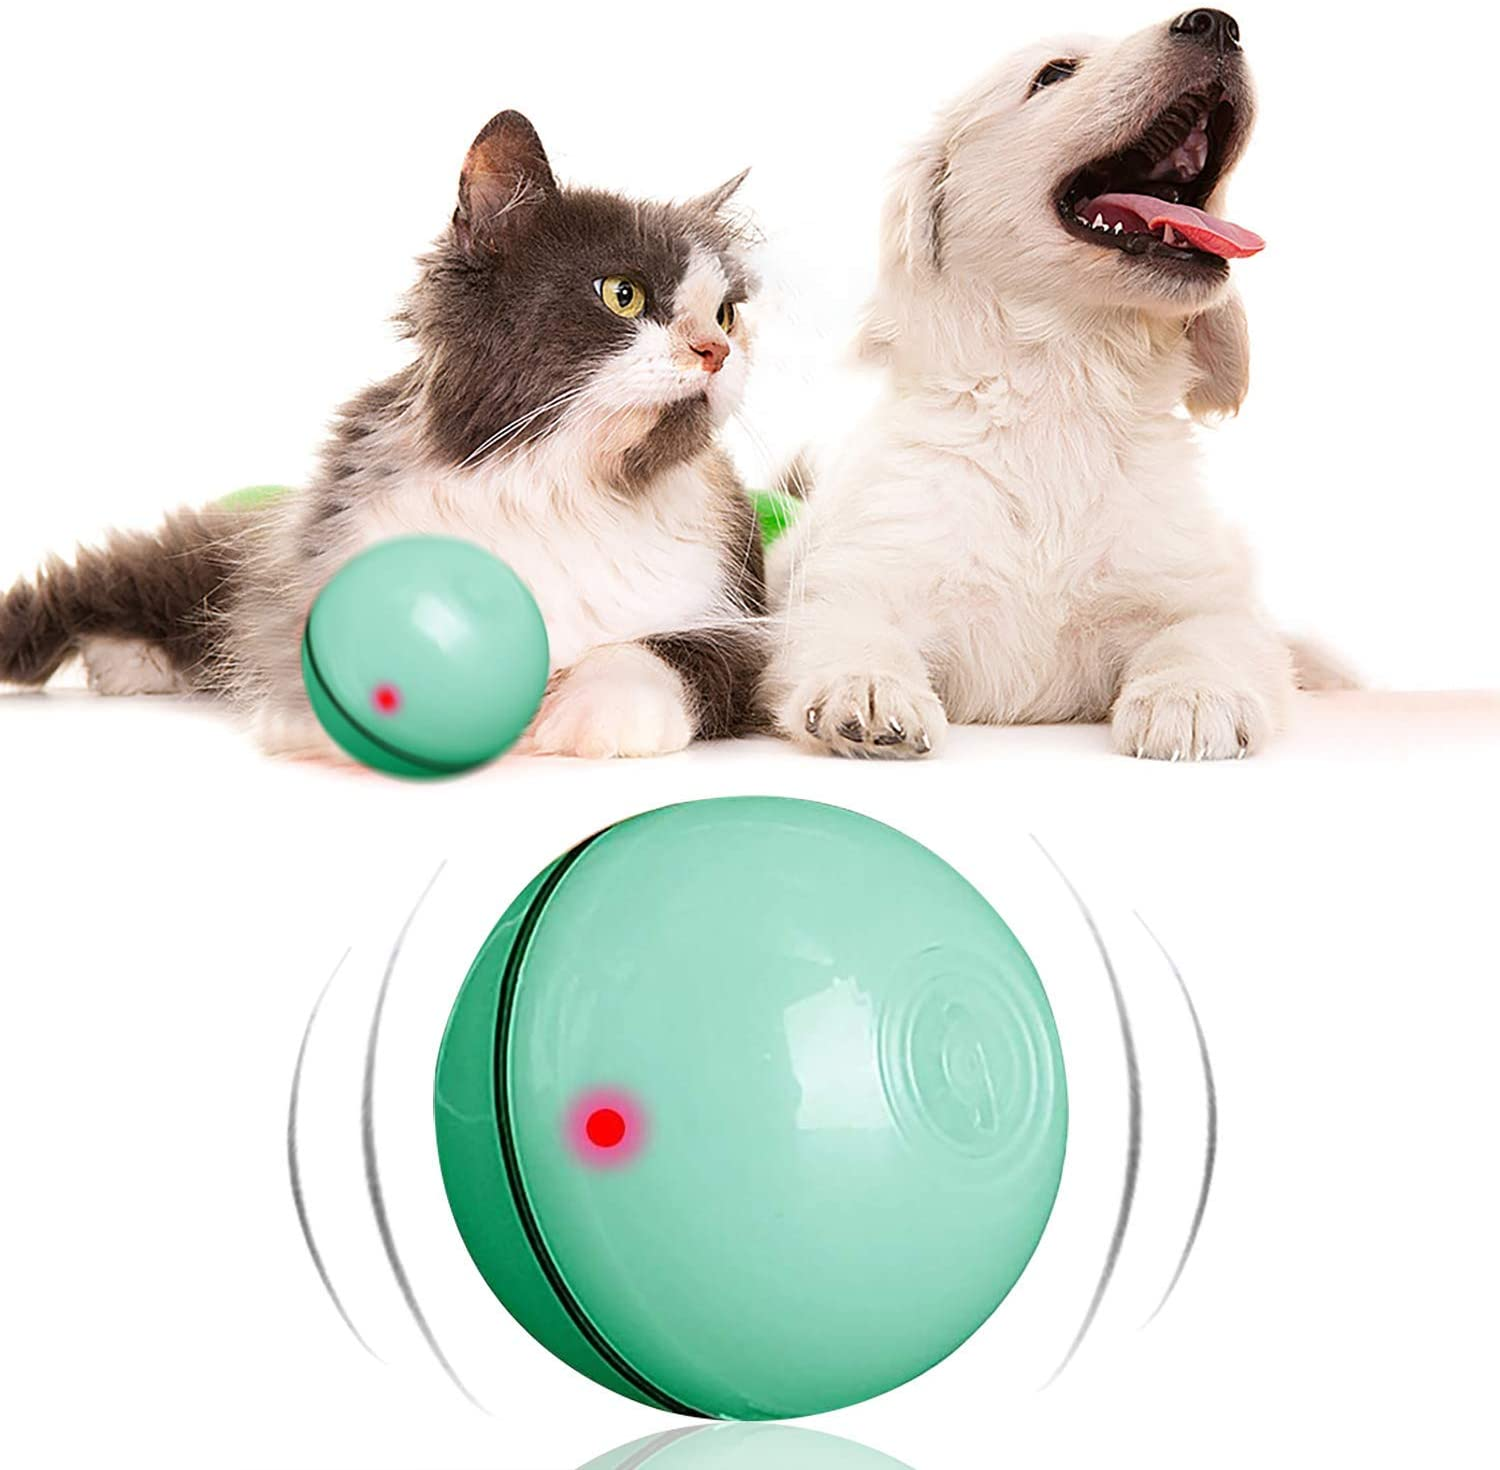 Amazon.com: Magic Roller Ball Toy Automatic Roller Ball Magic Ball for Dog  1 Rolling Ball 4 Color Ball Cover Cleaning Home Dog Toys Balls: Kitchen &  Dining